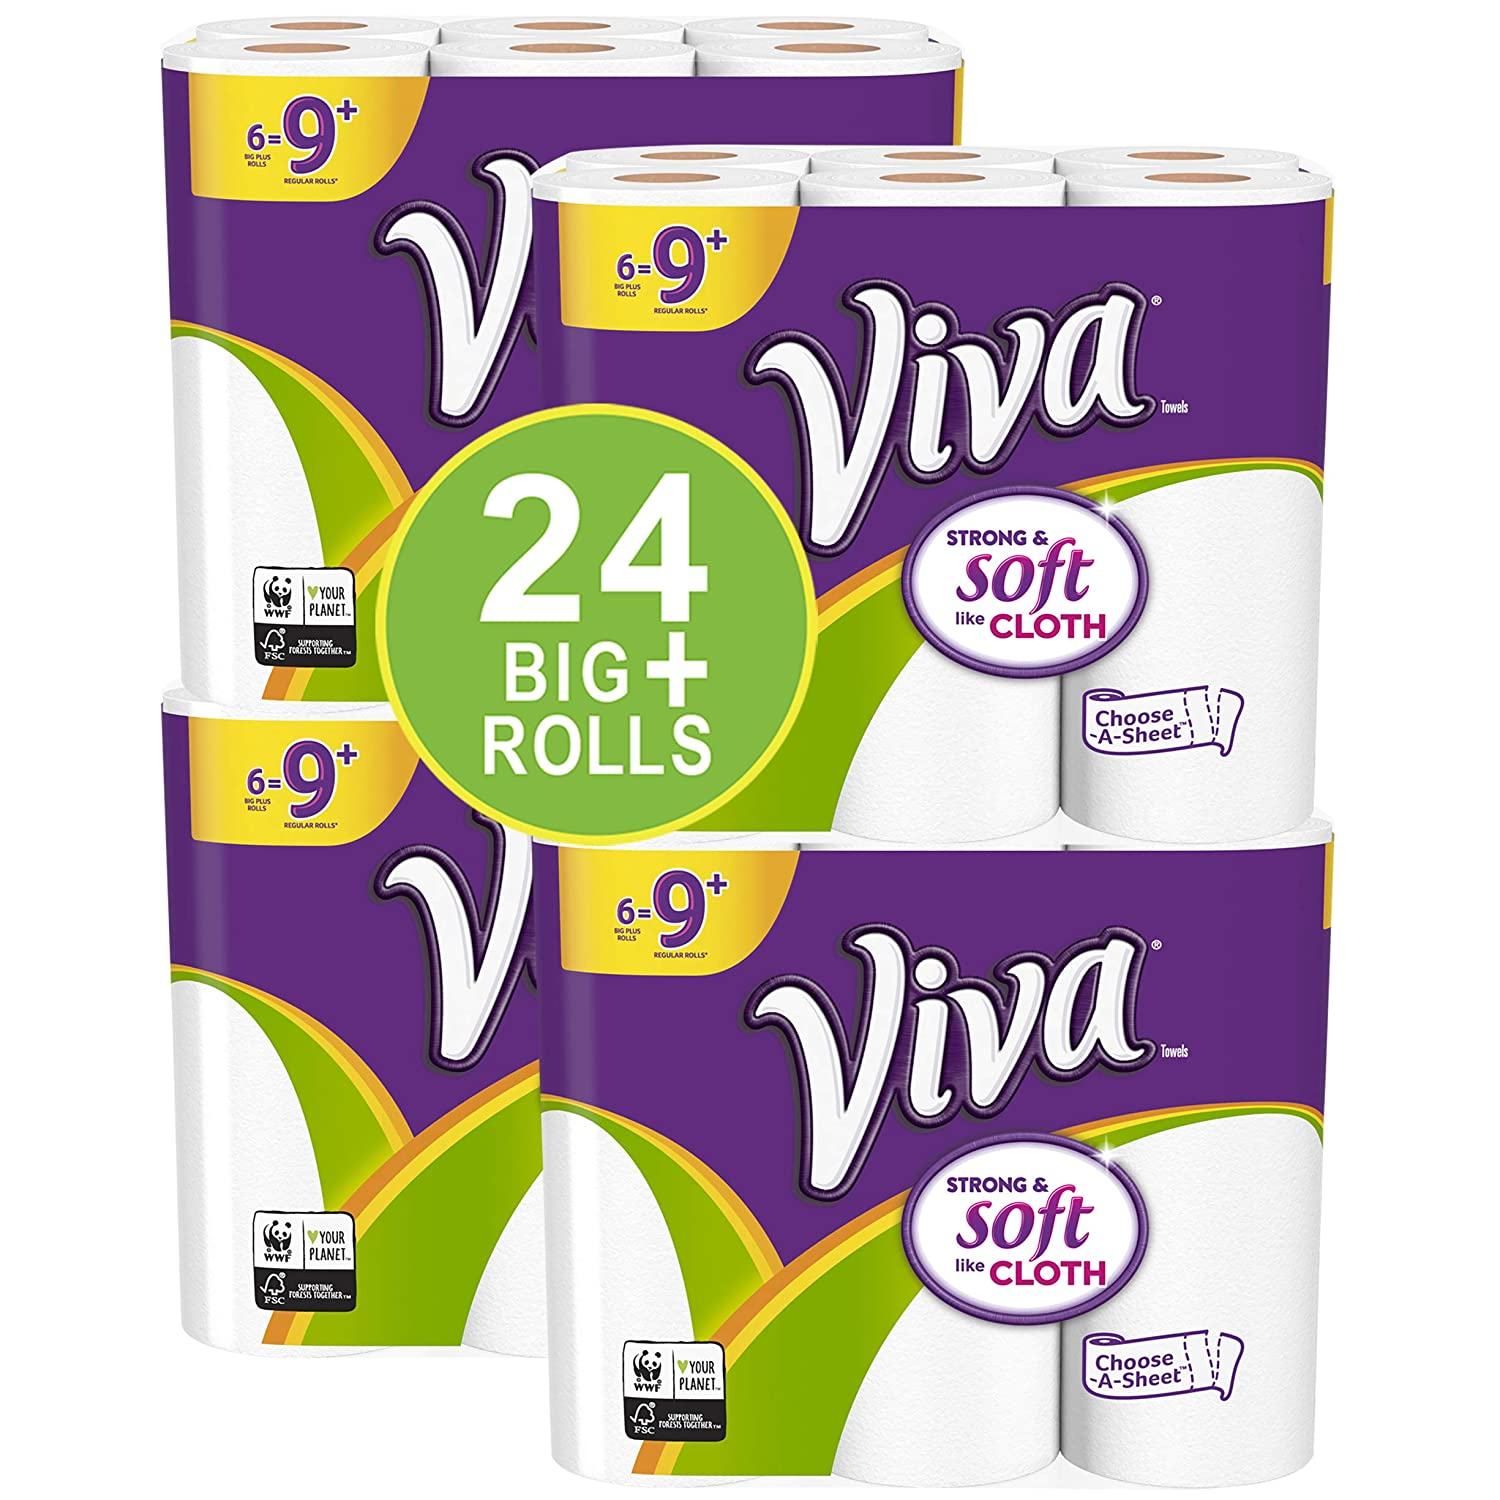 VIVA Choose-A-Sheet* Paper Towels, White, Big Plus Roll, 24 Count Kimberly-Clark Corp. 10036000470434